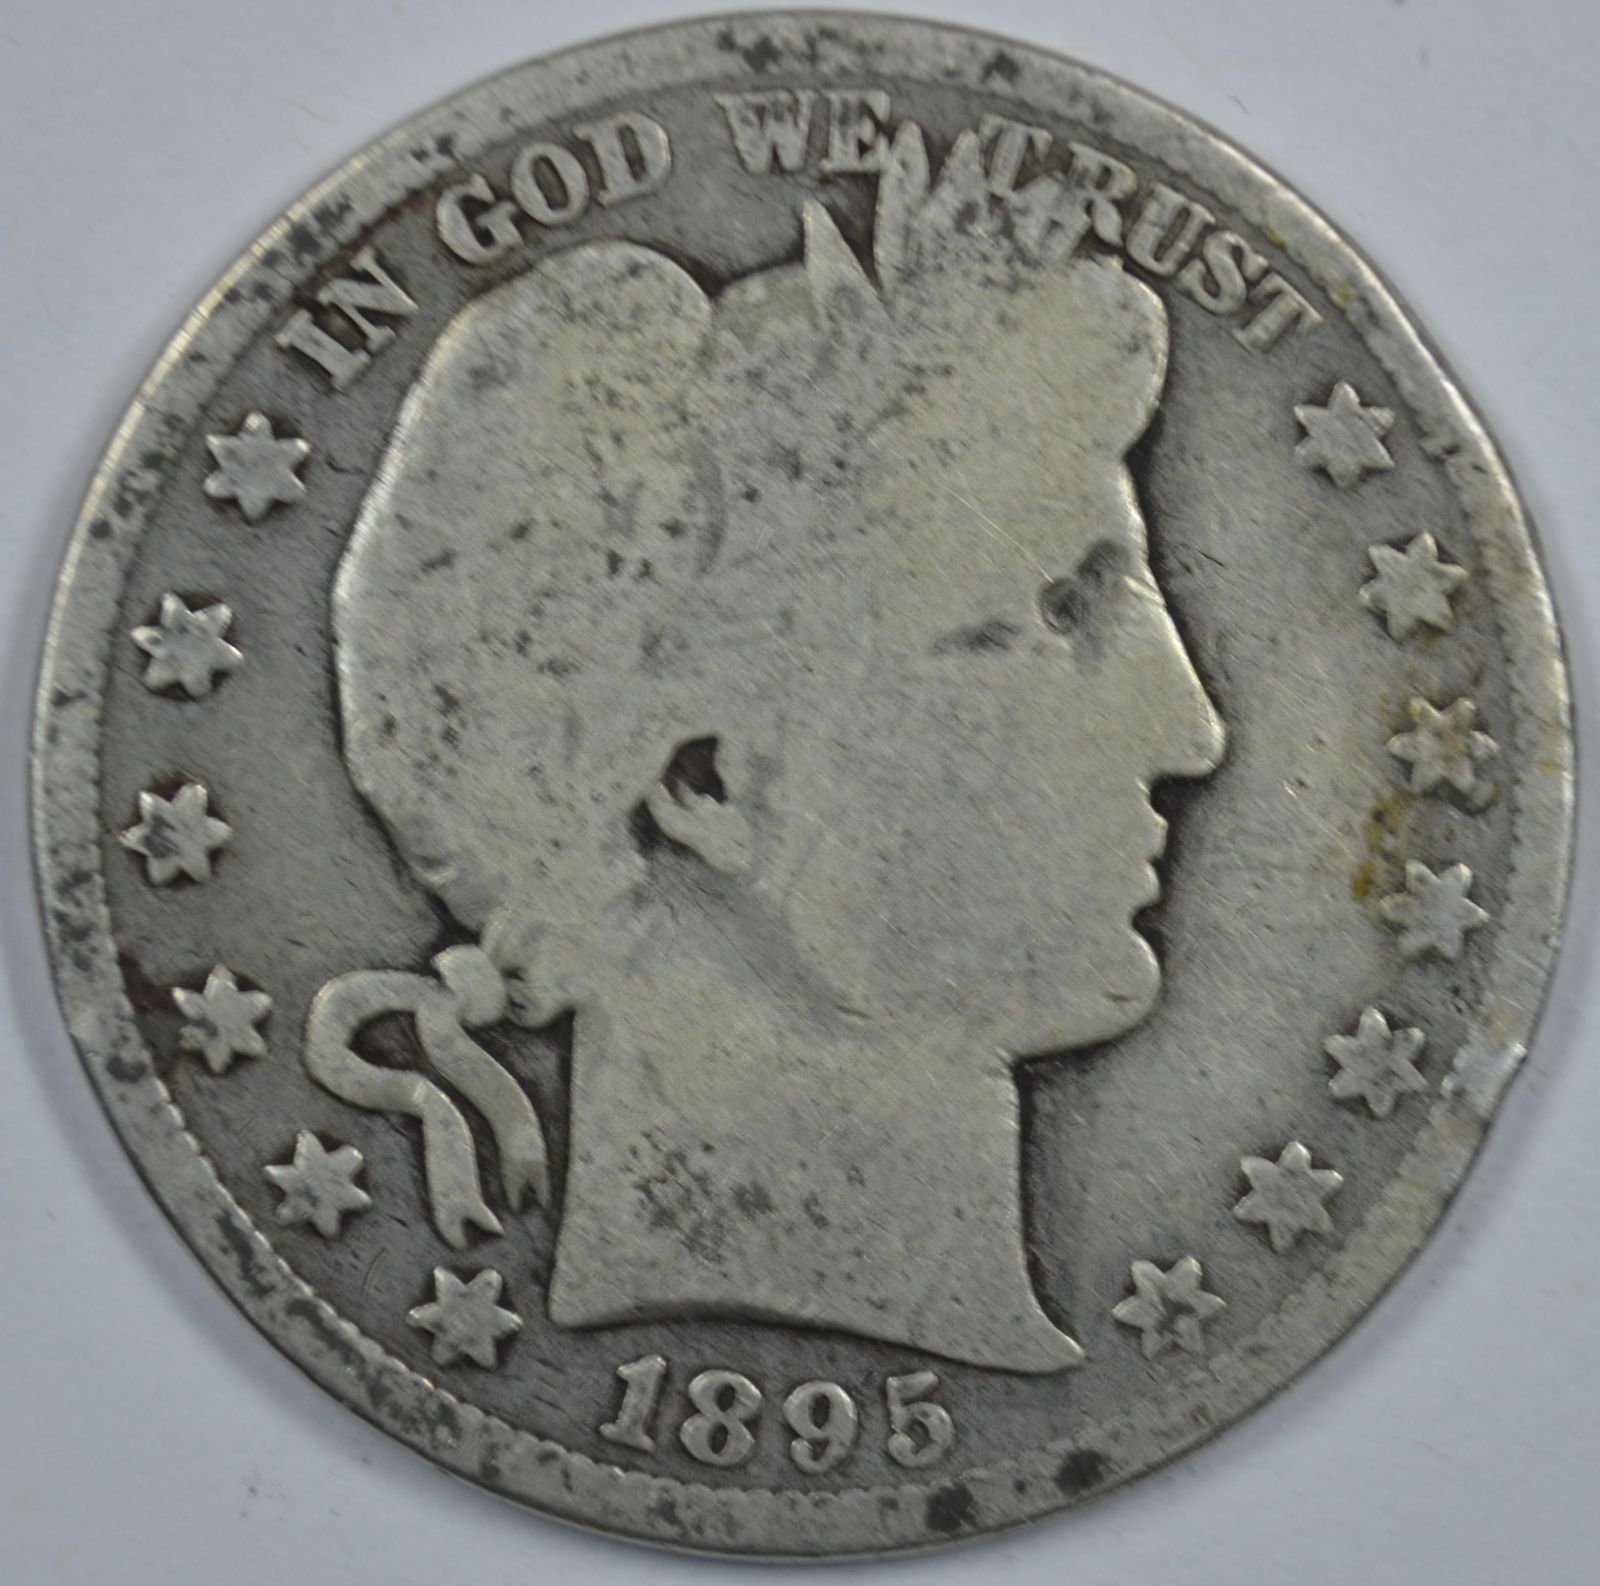 Primary image for 1895 P Barber circulated silver half G details